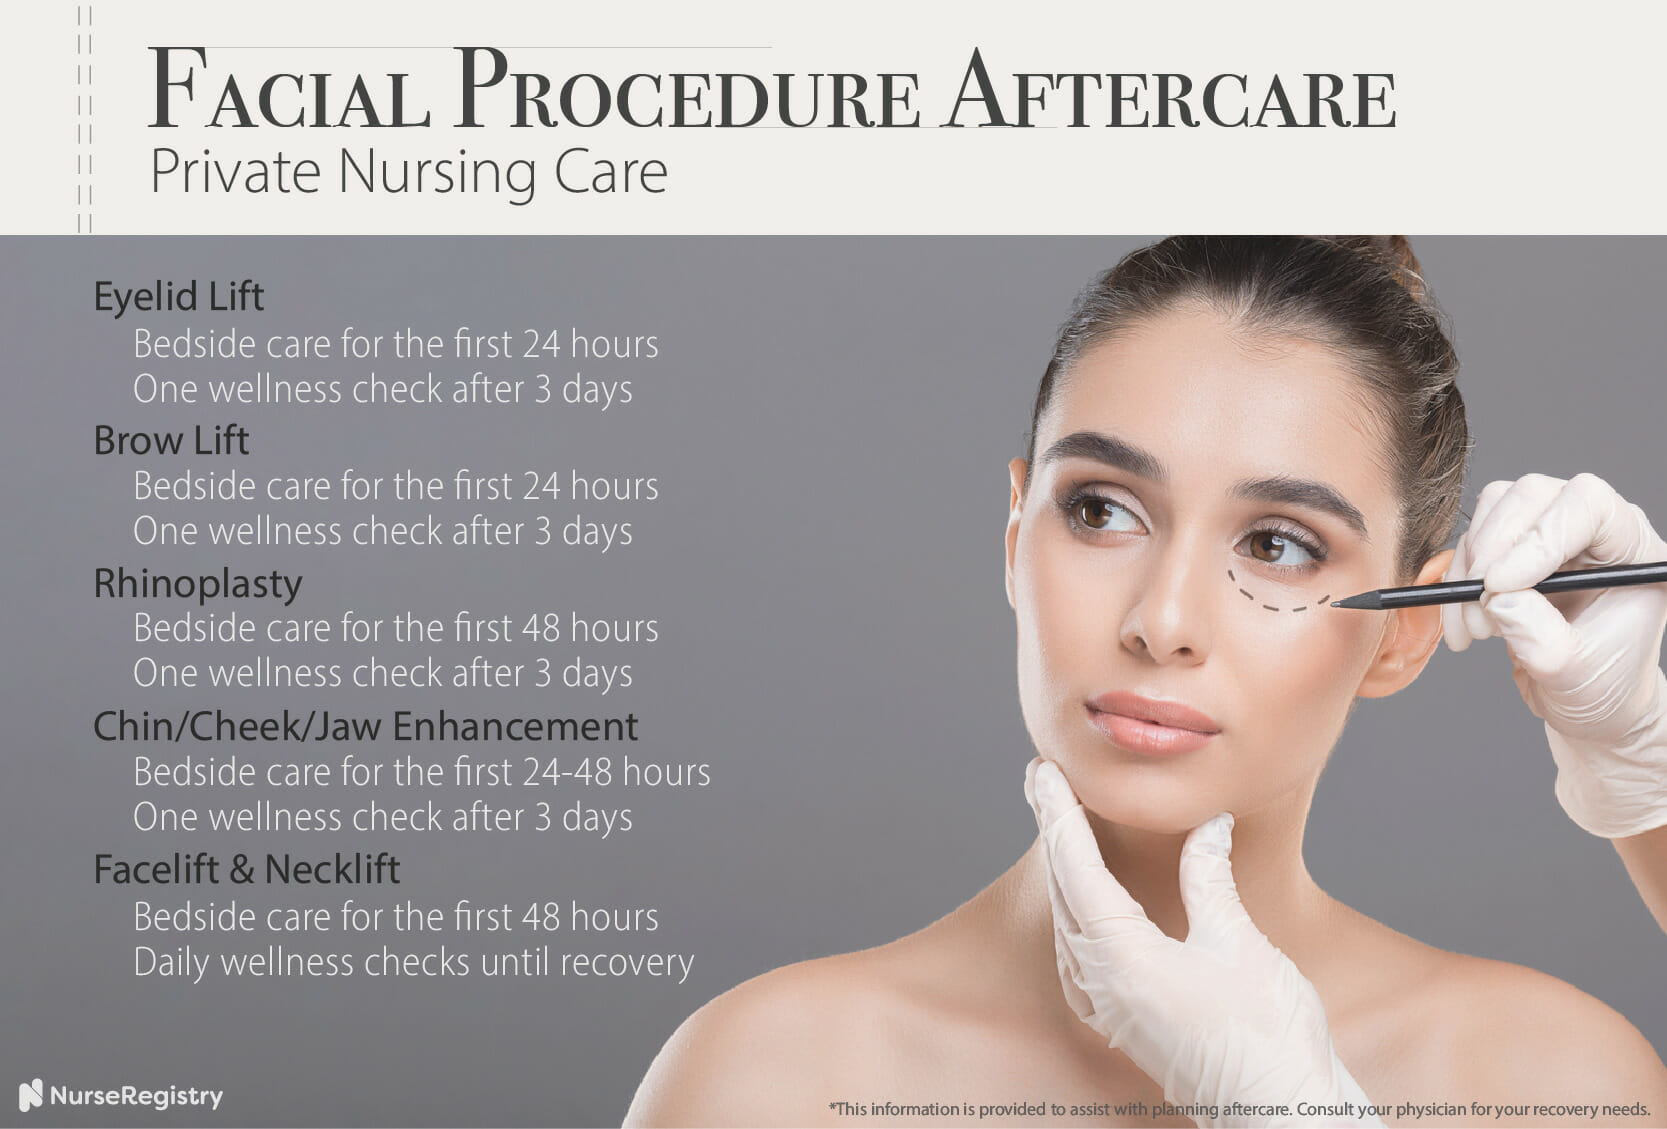 plastic surgery private nurse aftercare recommendations for facial procedures infographic